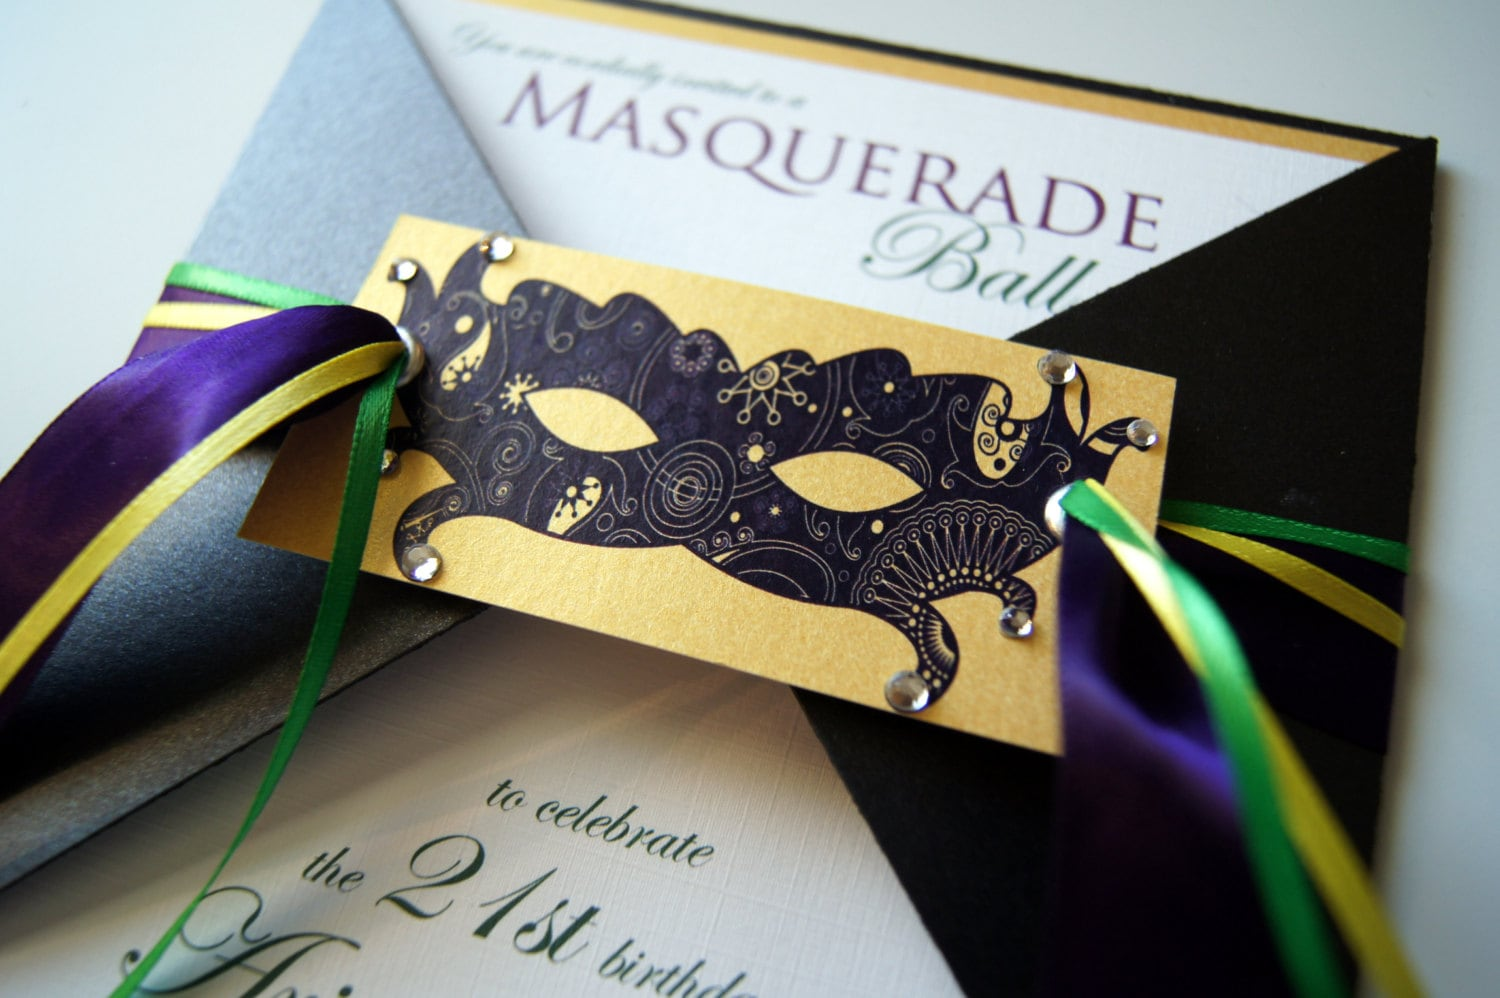 Ariannes Masquerade Ball Custom Invitation Suite QTY 50